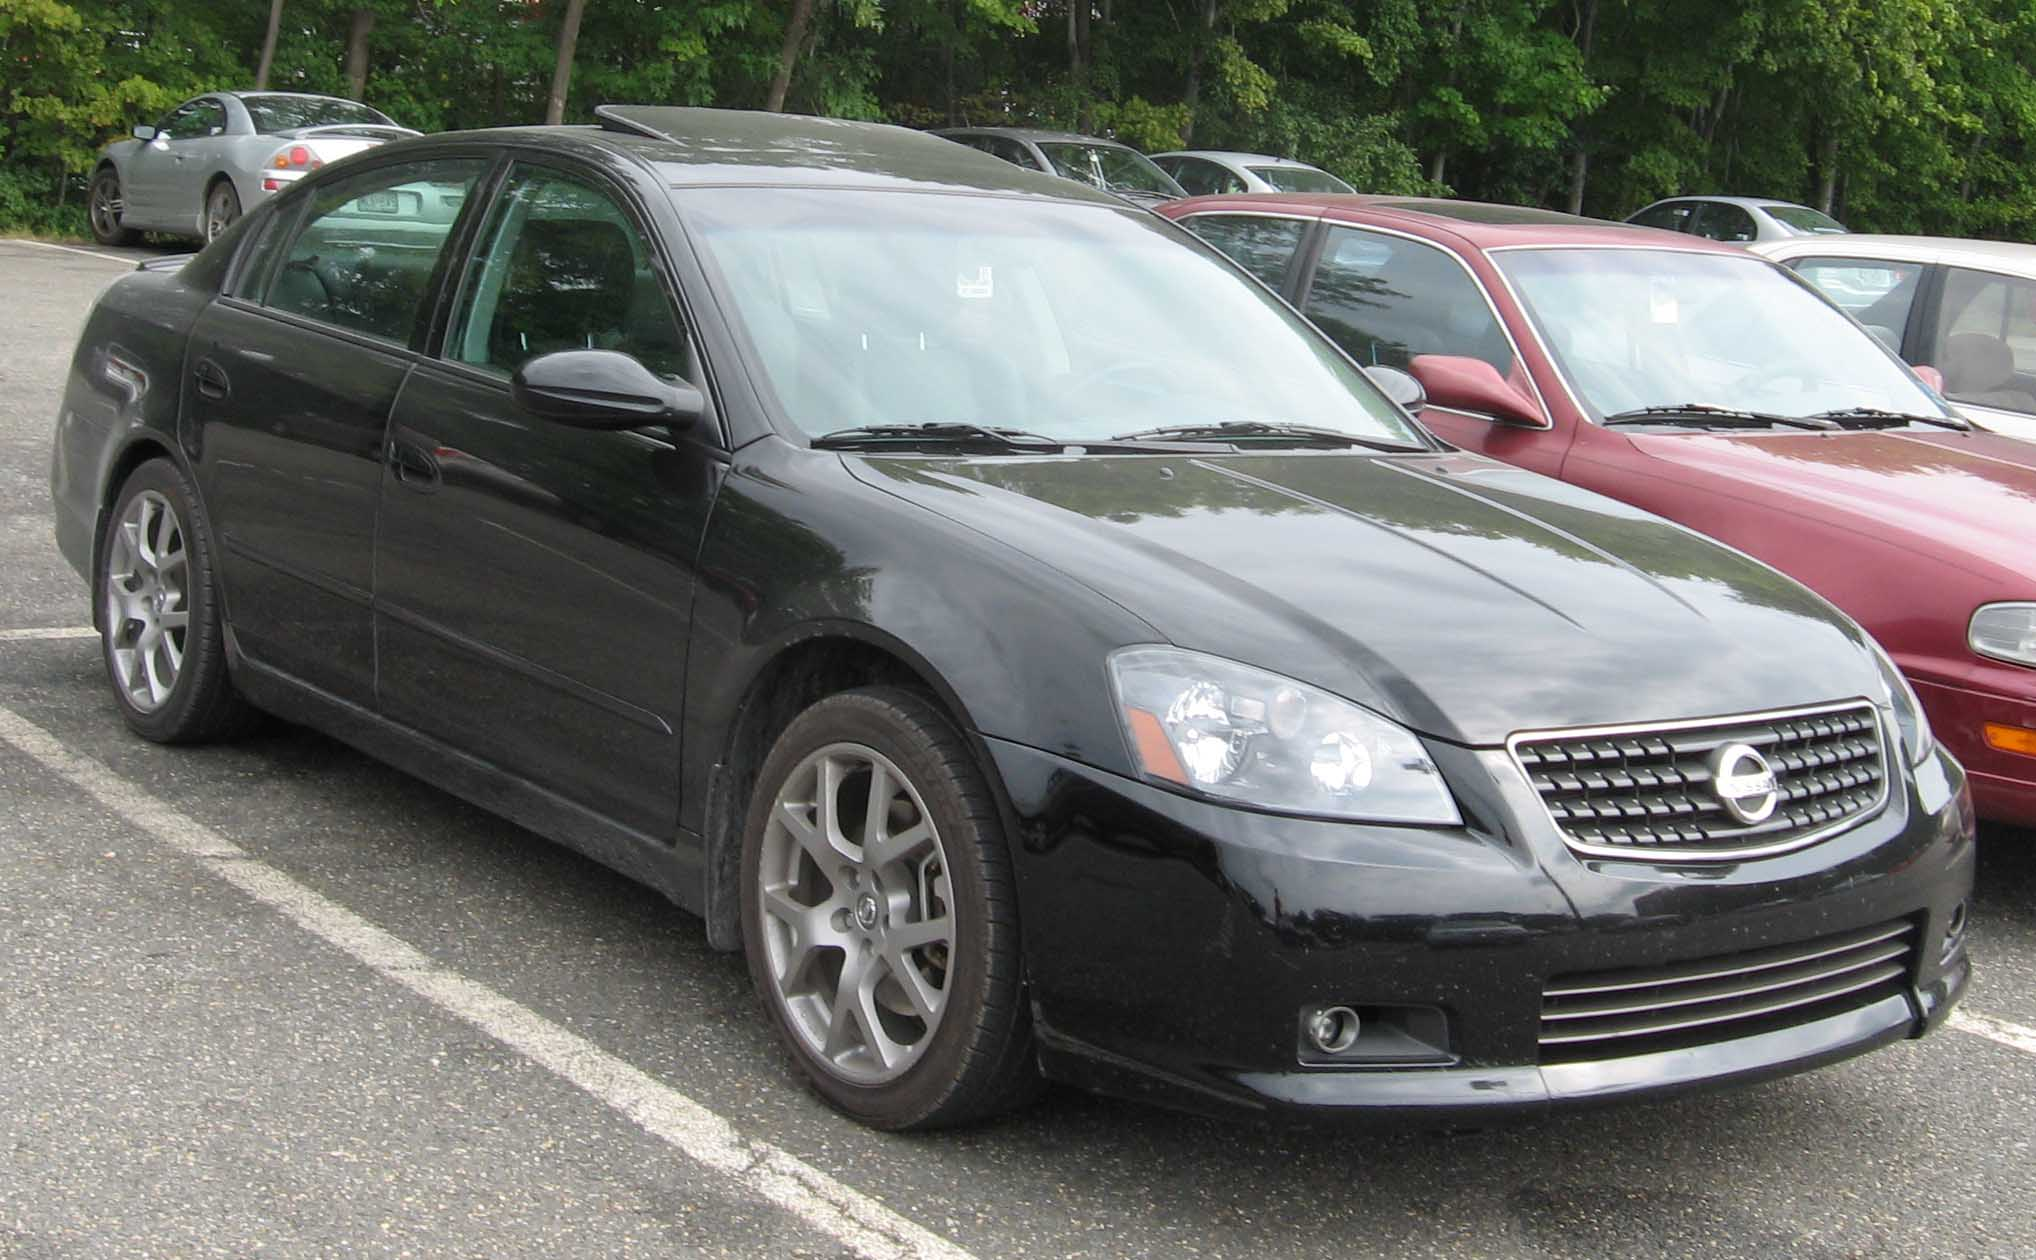 95 A Nissan Altima Se R Price Design And Review